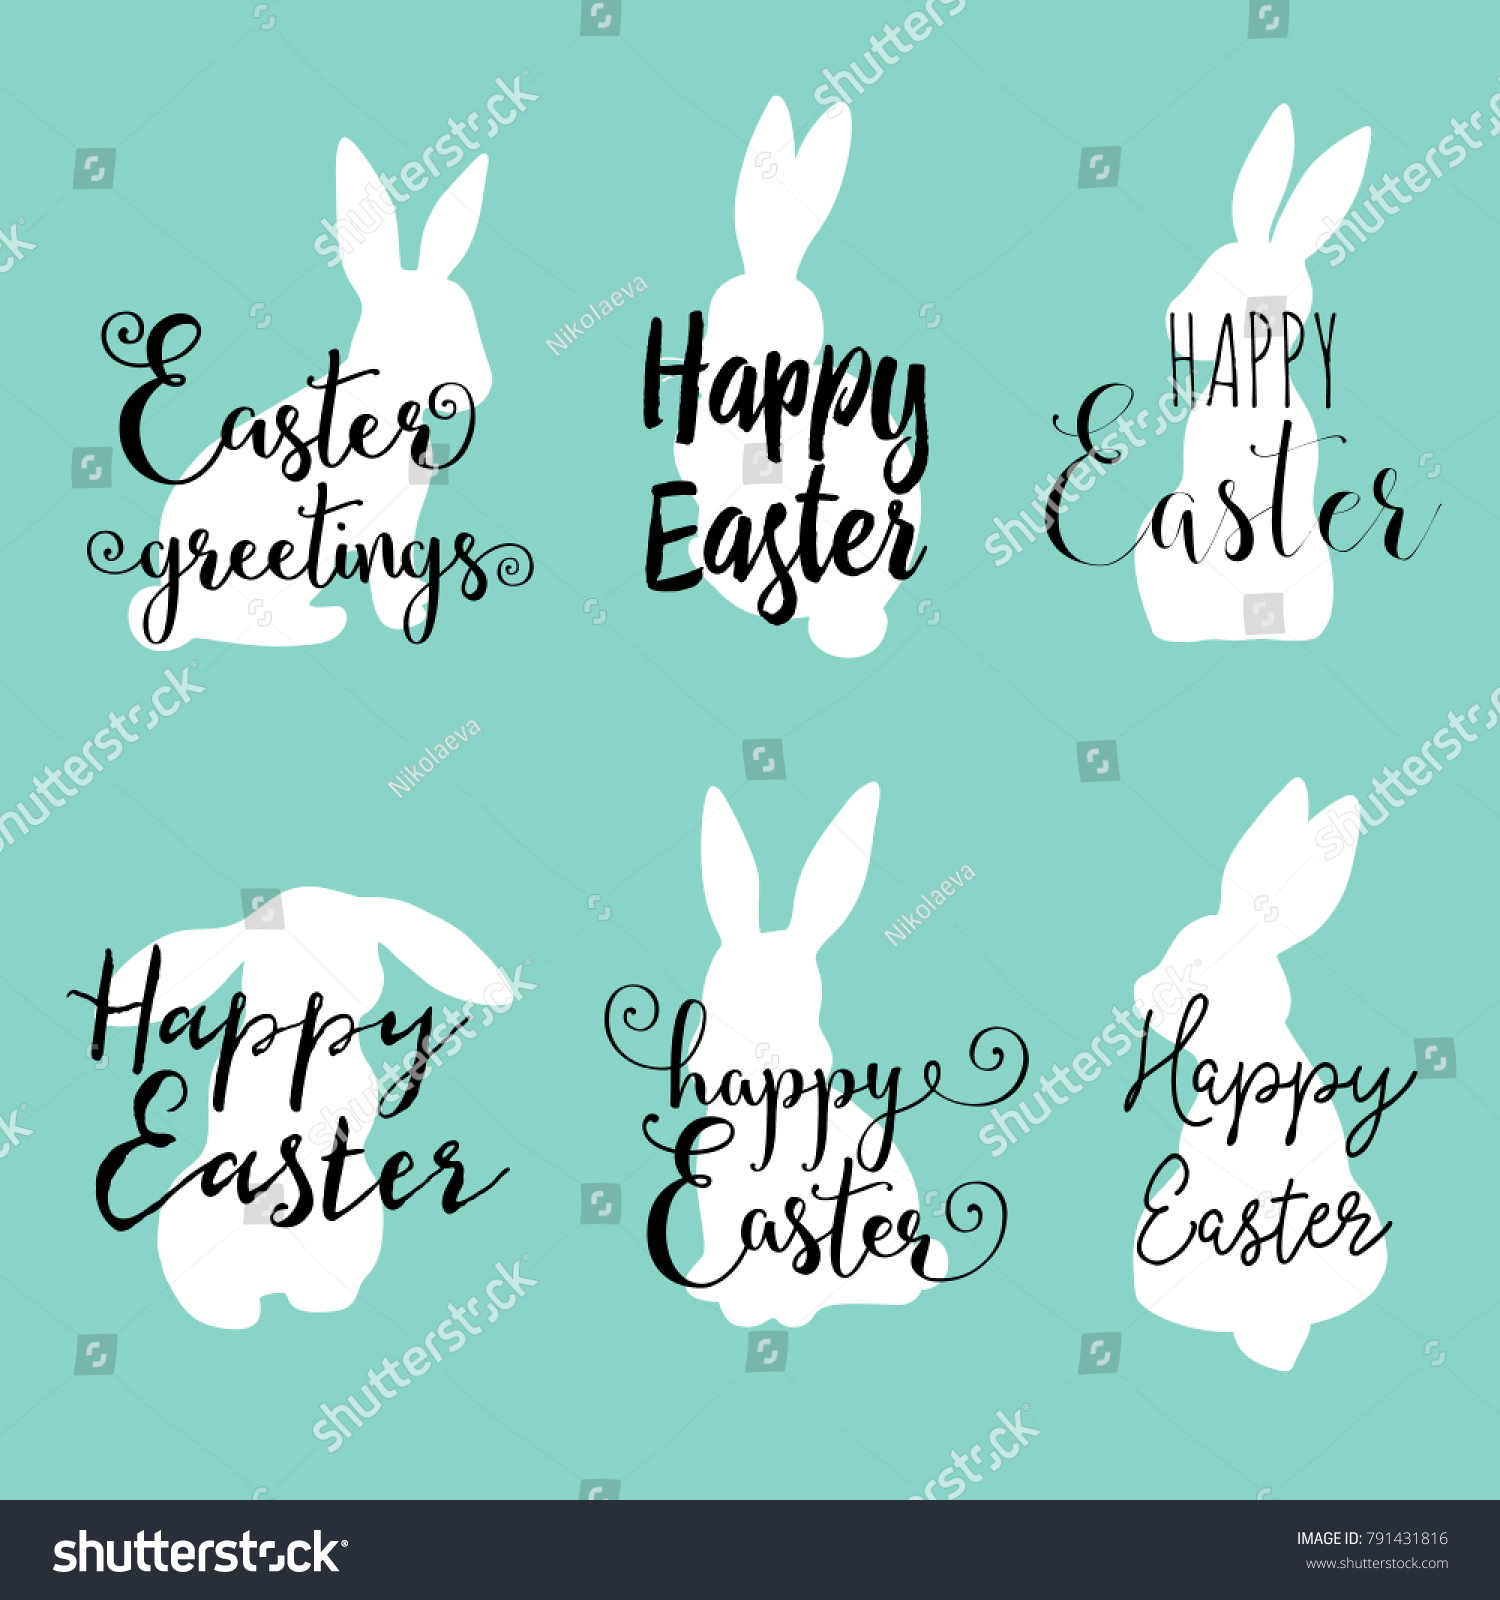 Hand Lettering Happy Easter Greetings Phrases Stock Vector Royalty